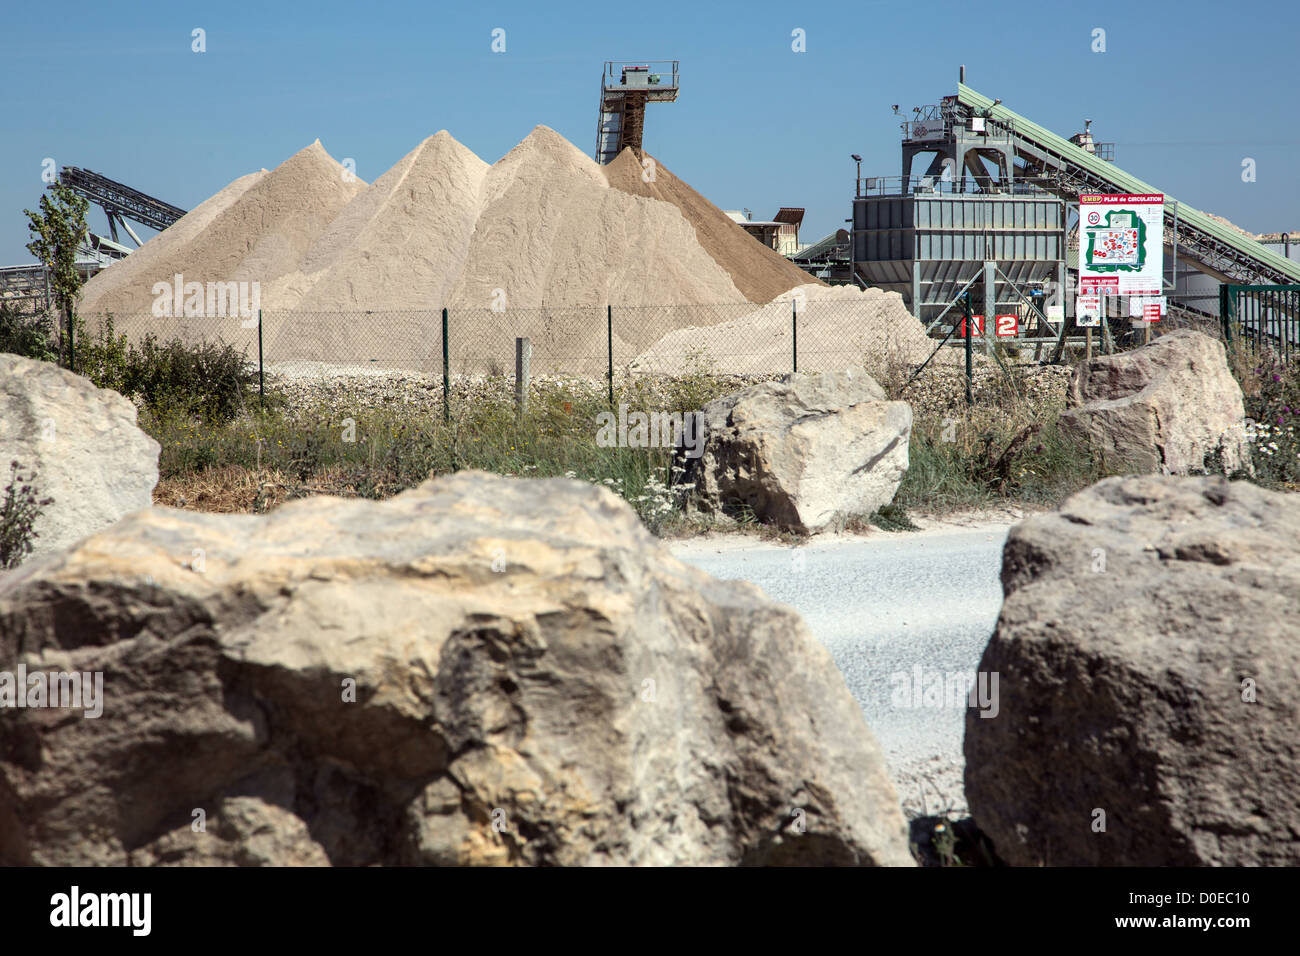 SAND AND ROCK QUARRY OF PRASVILLE BUILDING MATERIAL COMPANY OF BEAUCE EURE-ET-LOIR (28) FRANCE - Stock Image